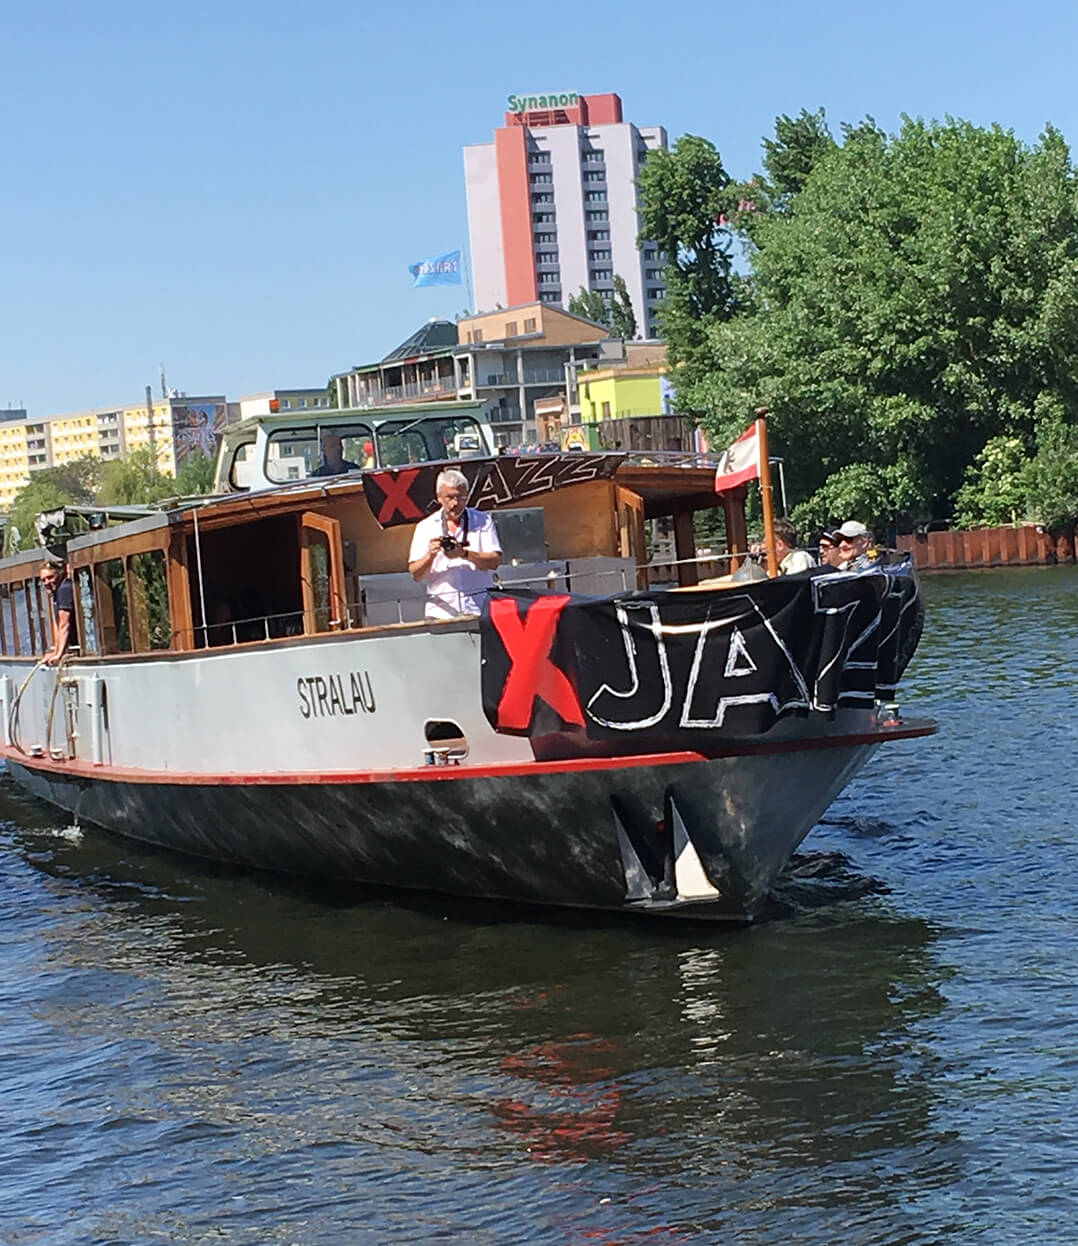 XJAZZ Blueboat